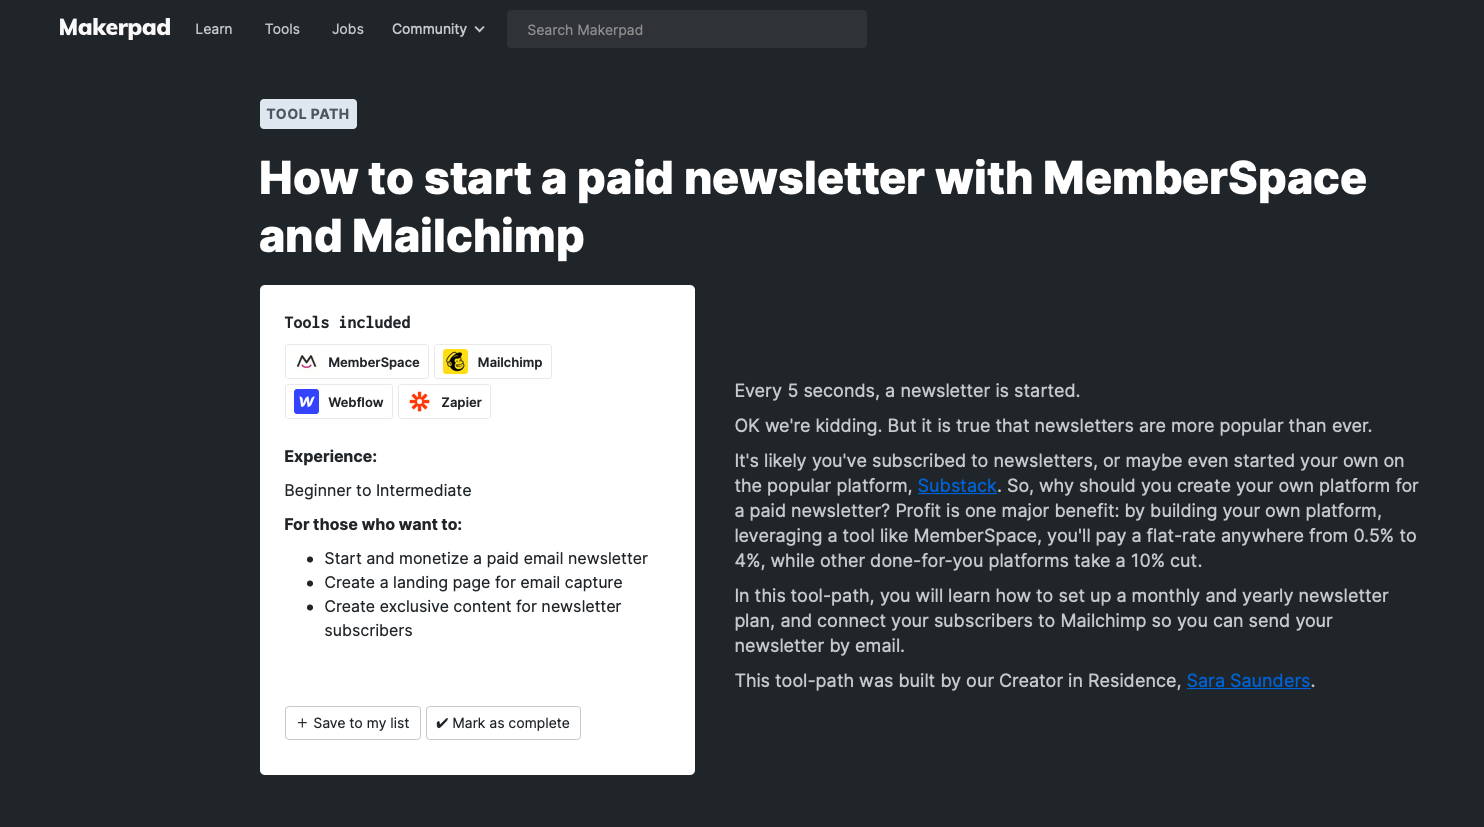 How to start a paid newsletter with MemberSpace and Mailchimp